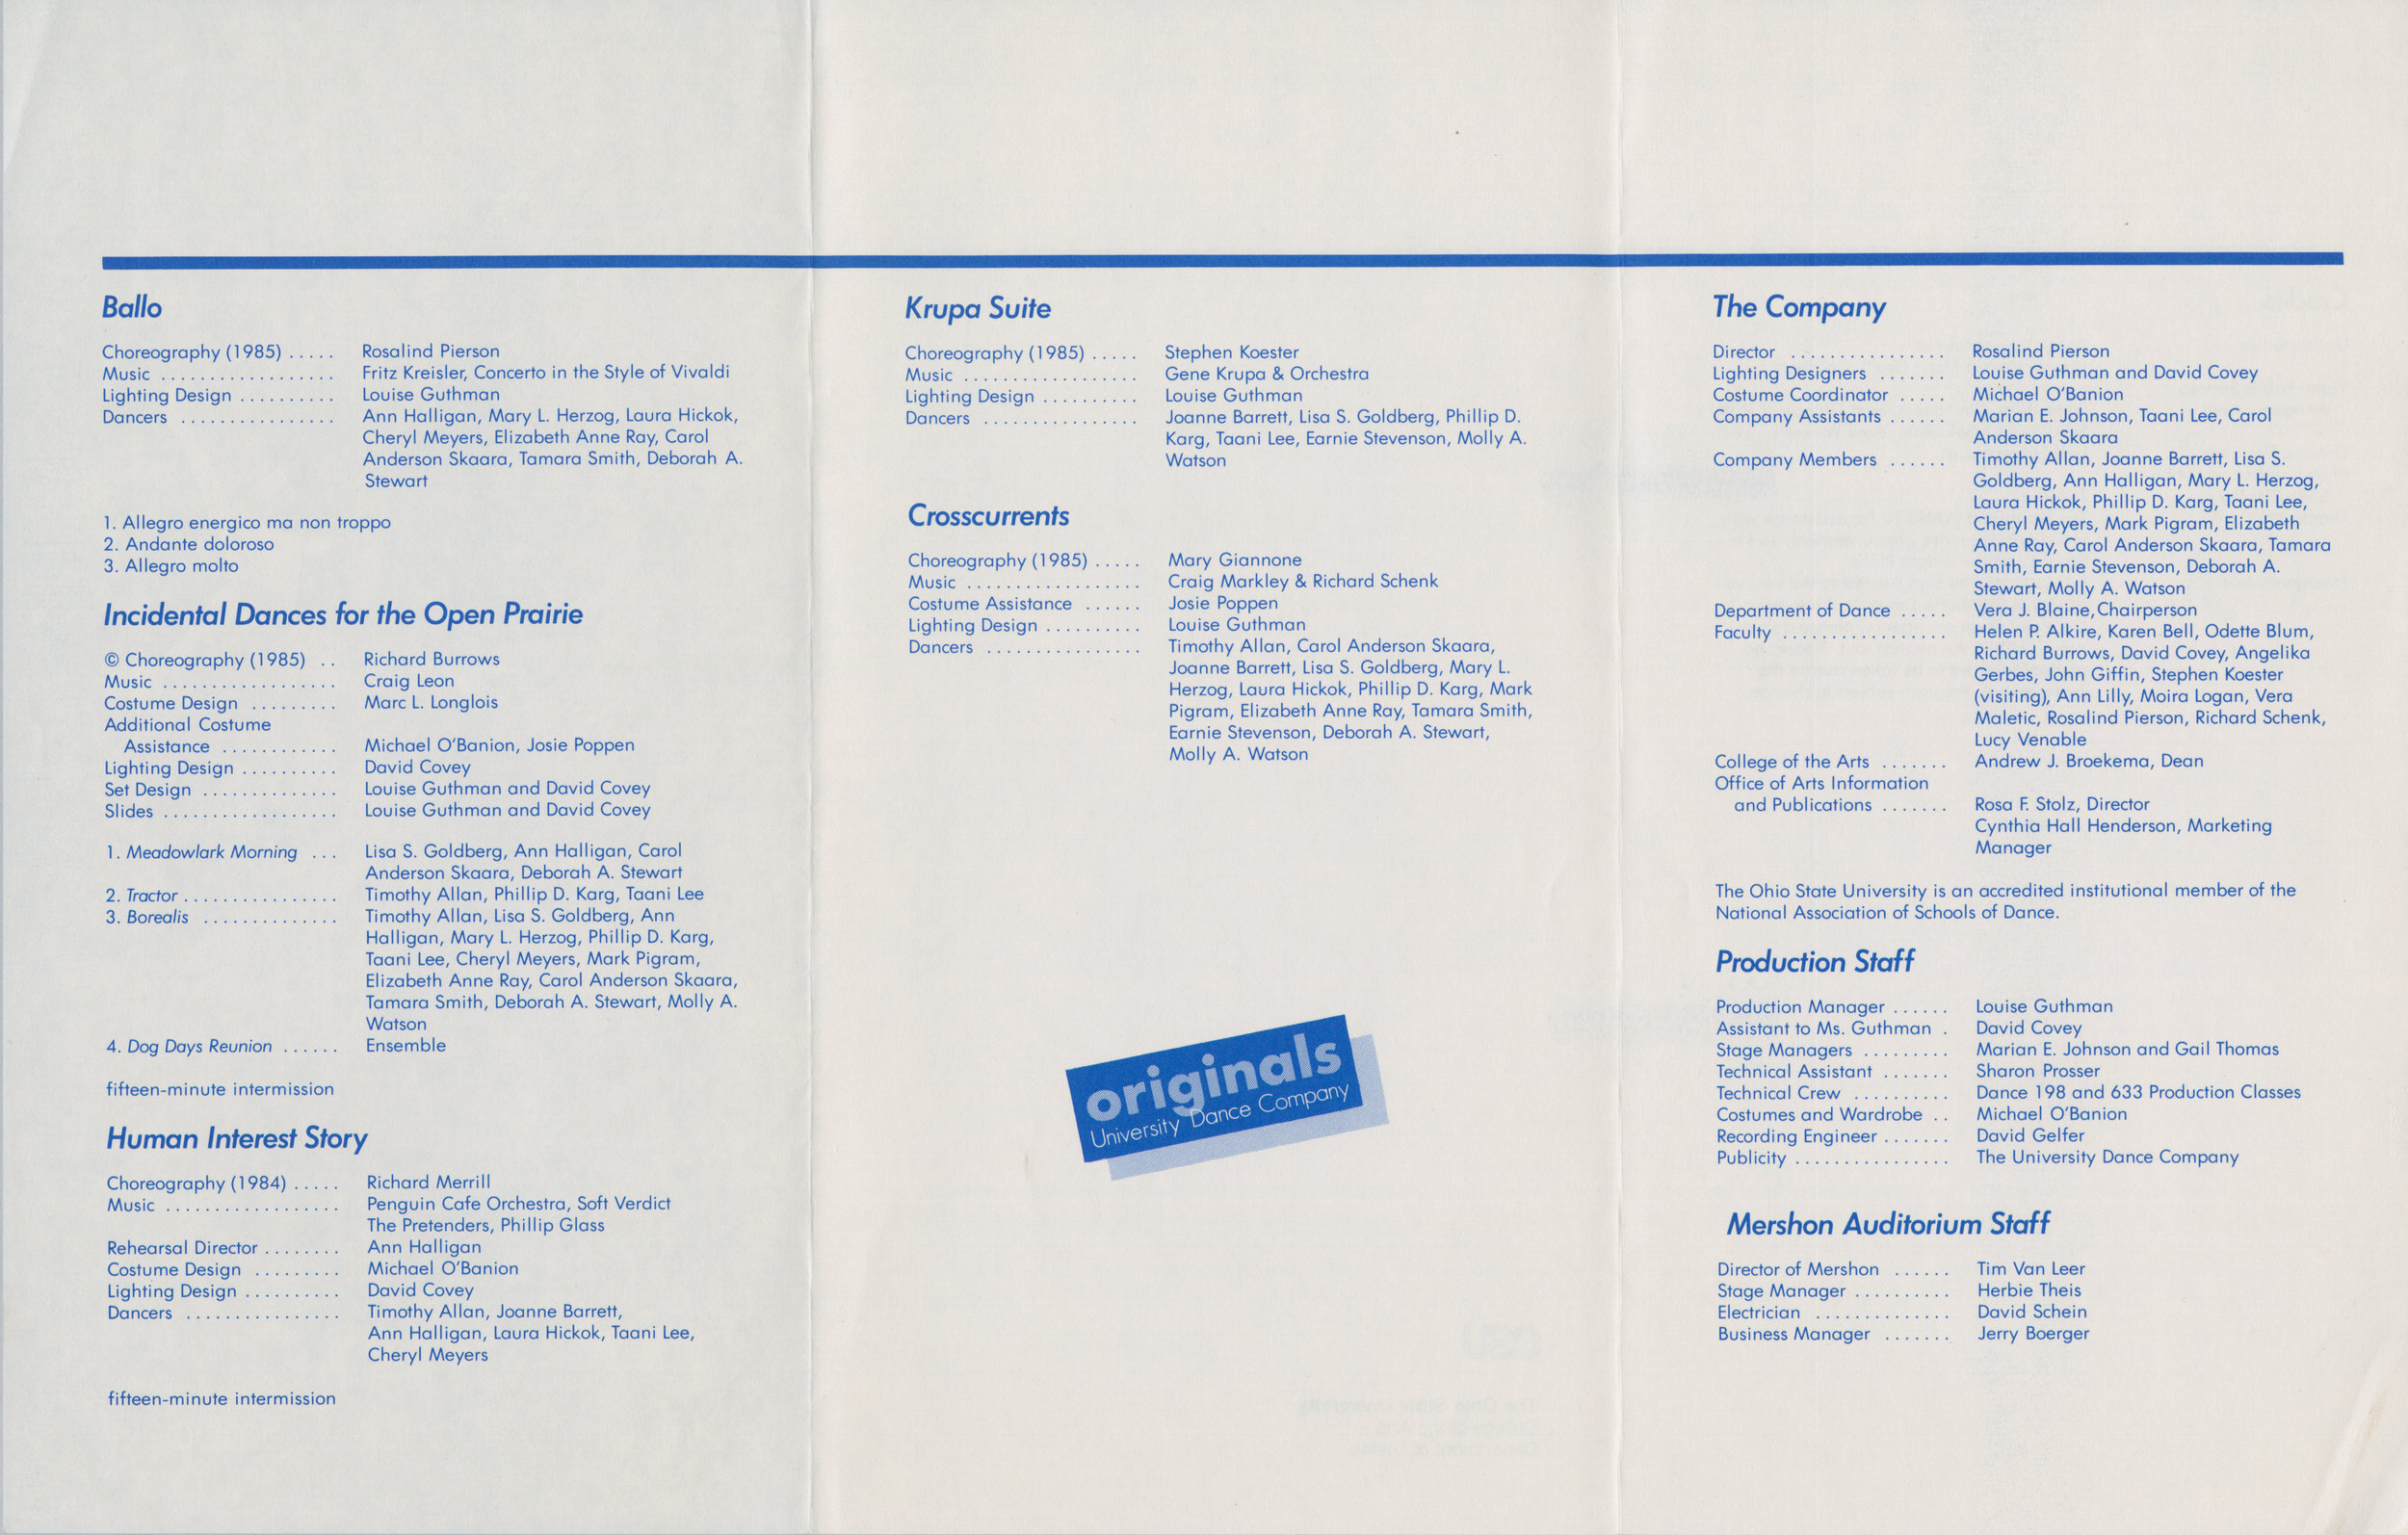 UDC_1985_DancePrograms-007-02.jpg